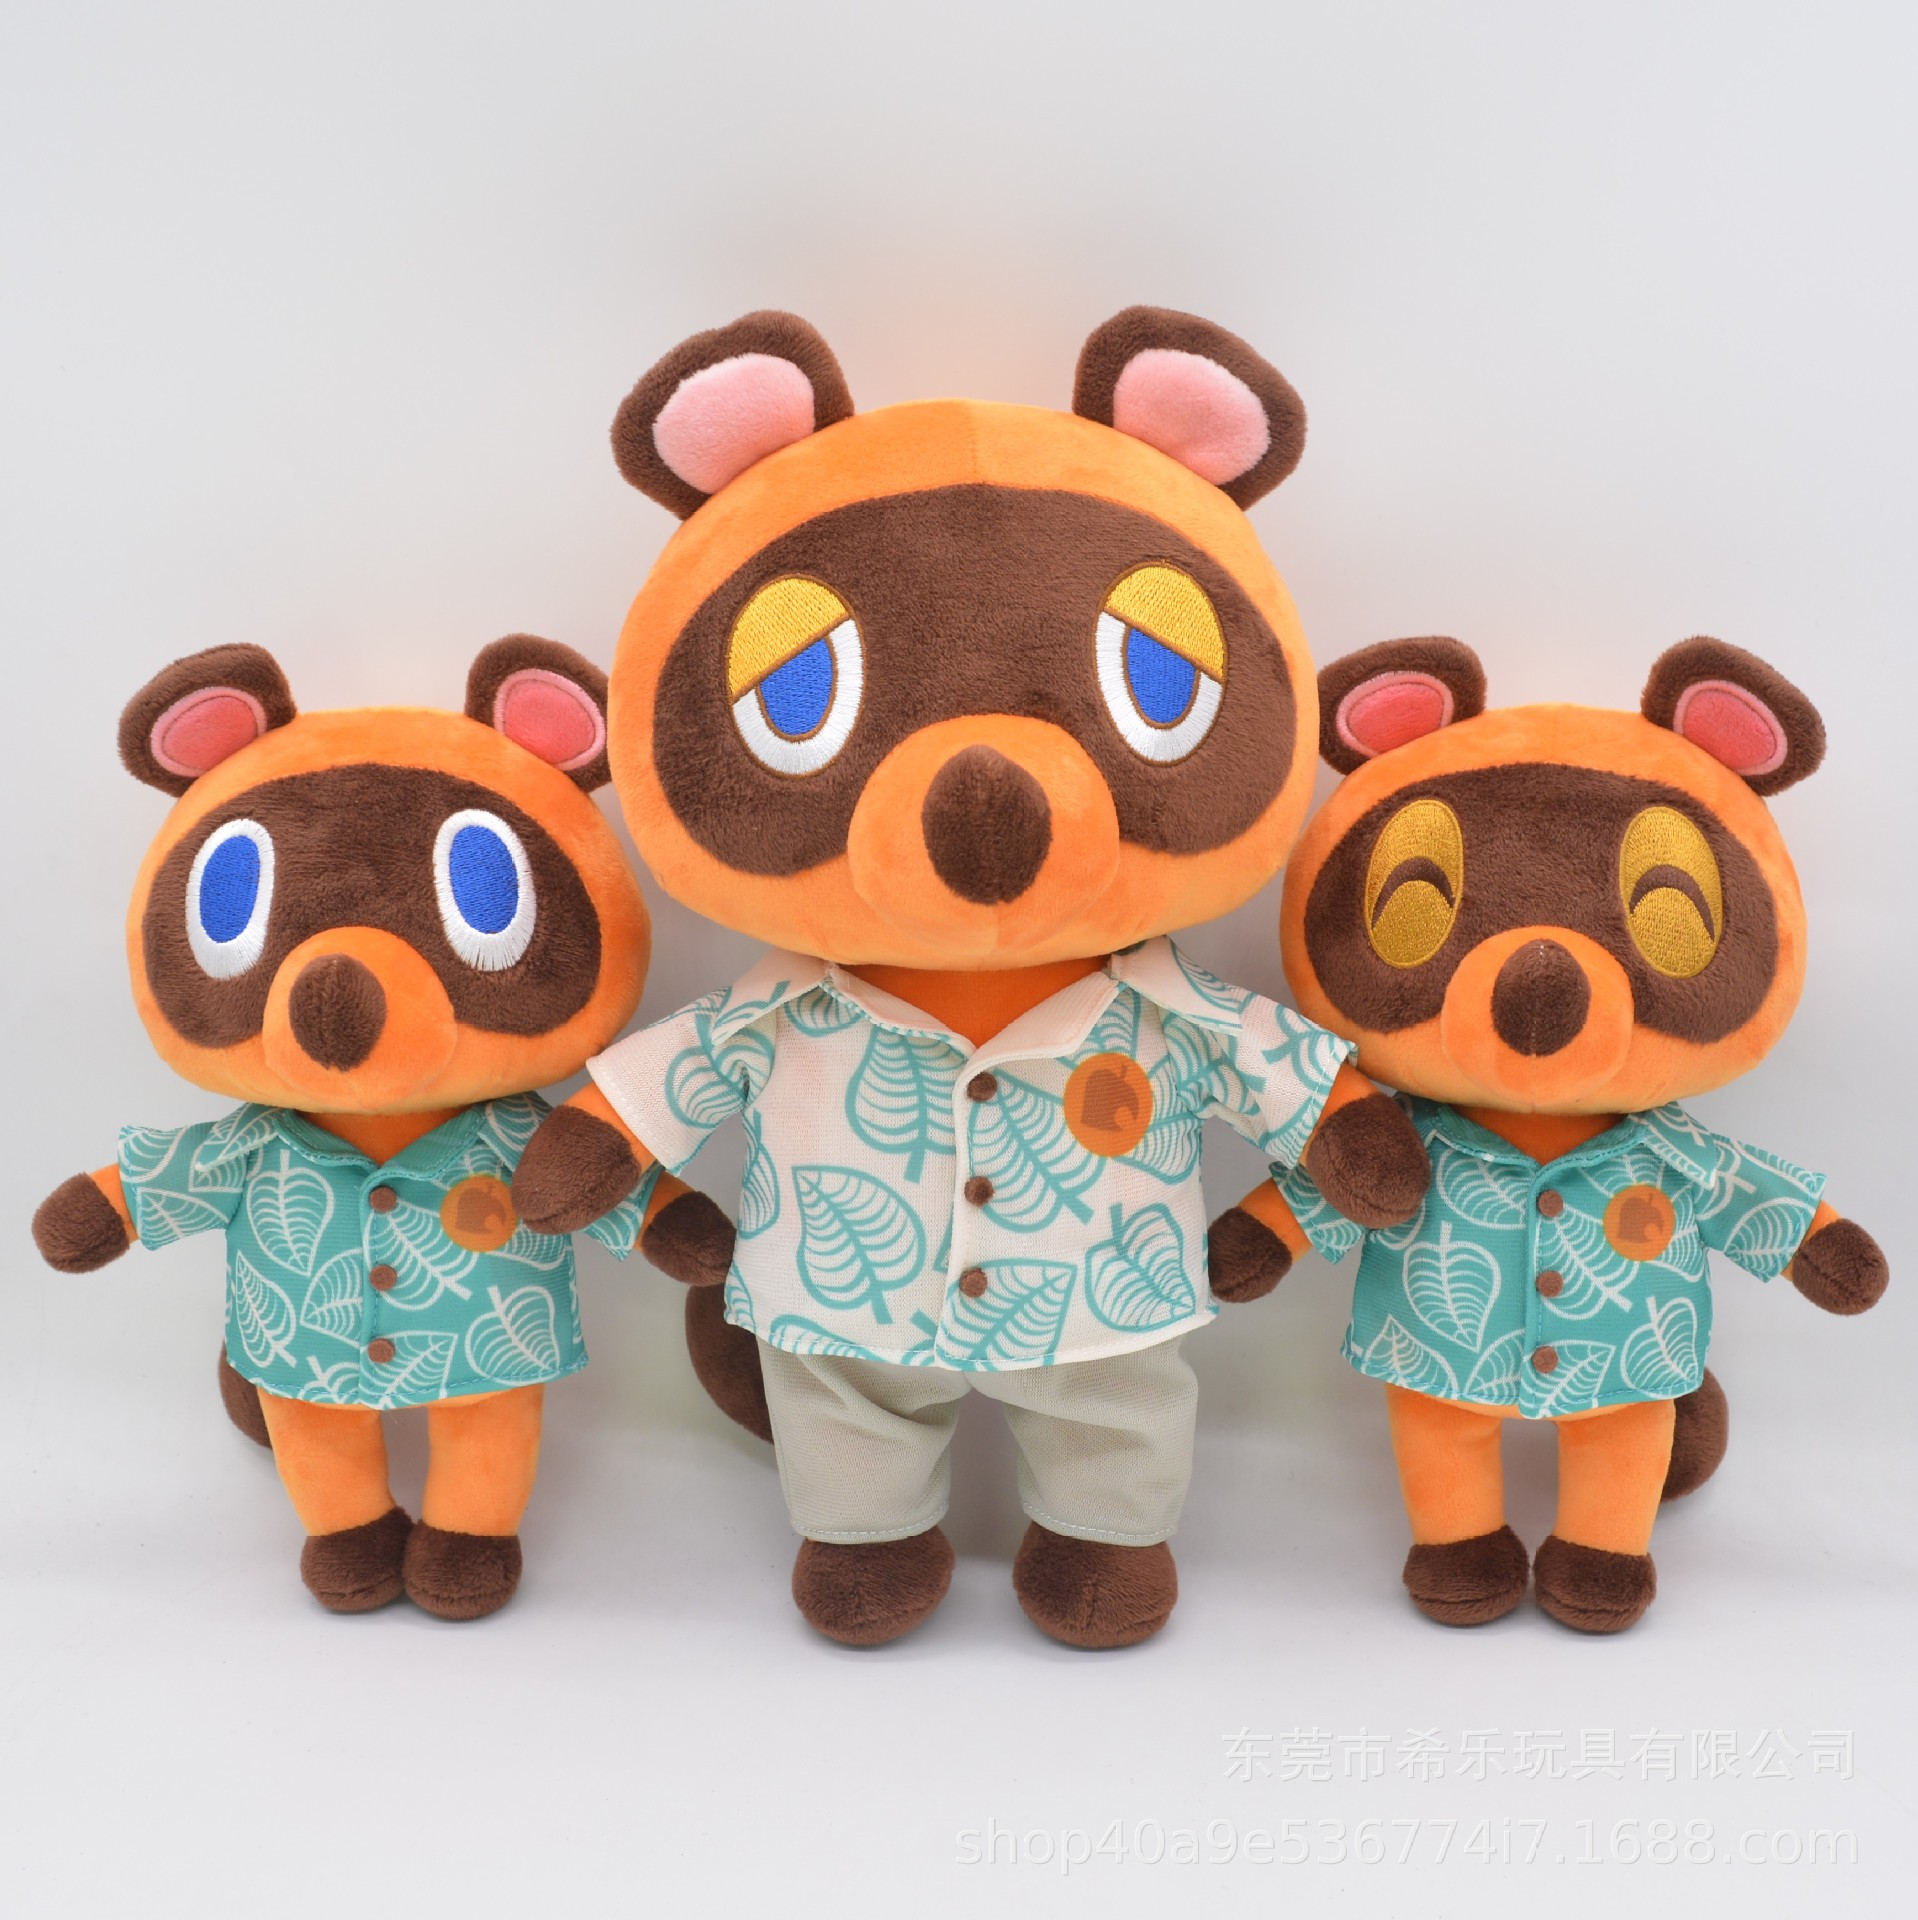 New arrival Tom Nook Plush Toys Dolls Timmy Tommy raccoon brothers Dolls Plush Animal Crossing Game doll birthday Gifts